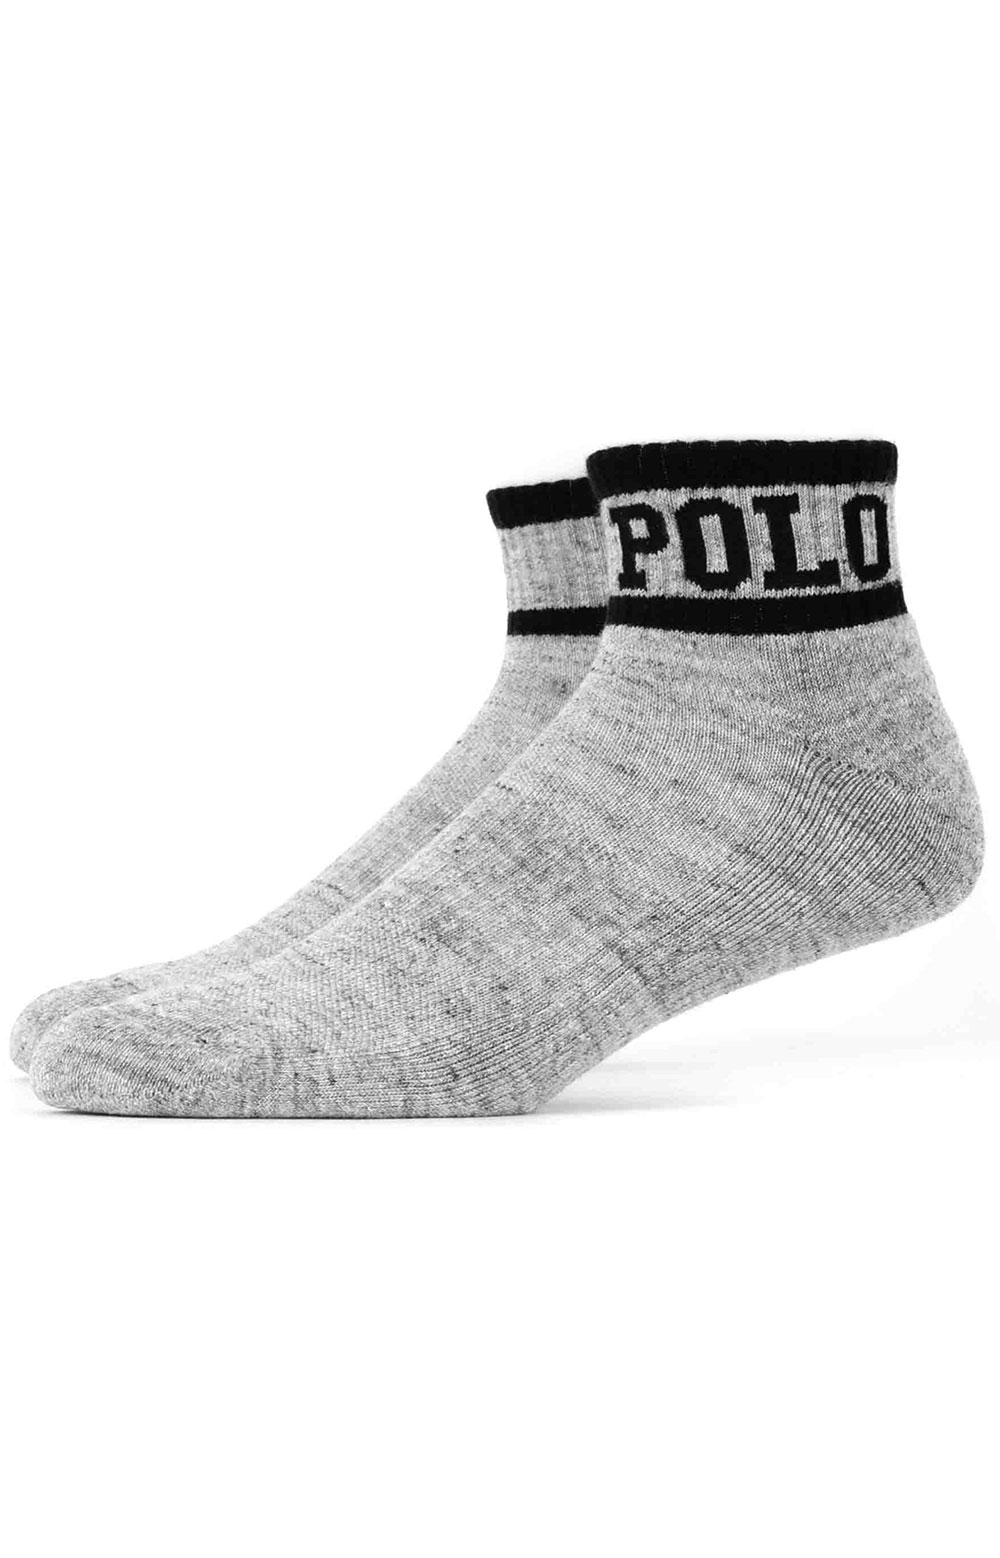 Polo Logo Cushioned Quarter Socks 3 Pack - White Assorted  4